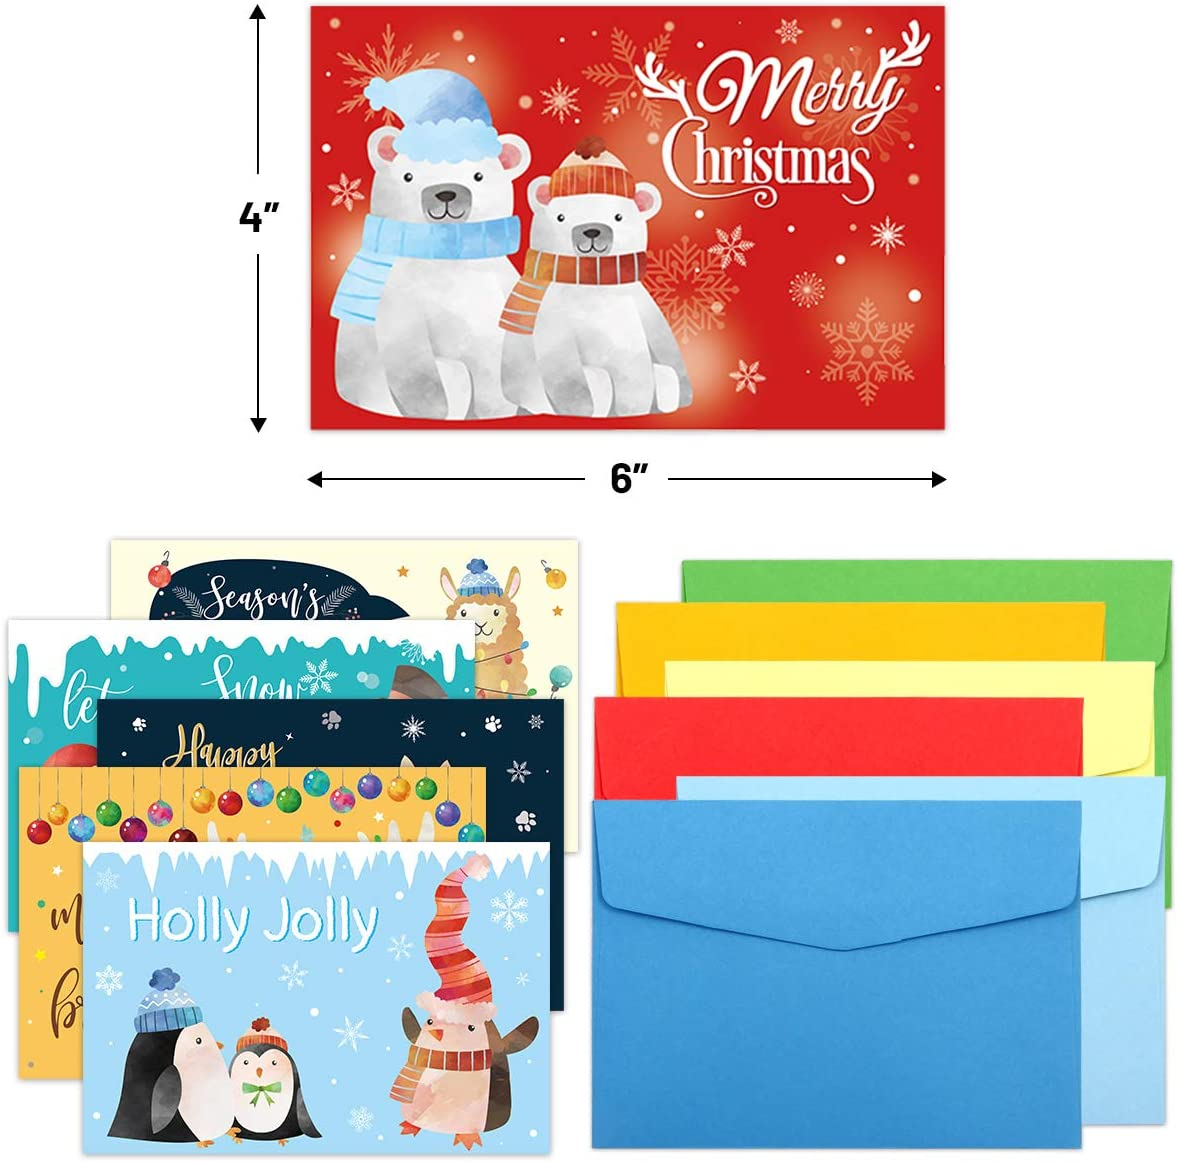 36 Holiday Cards with Envelopes Christmas Greeting Cards Blank Note Cards office School Home Party Invitation Supply